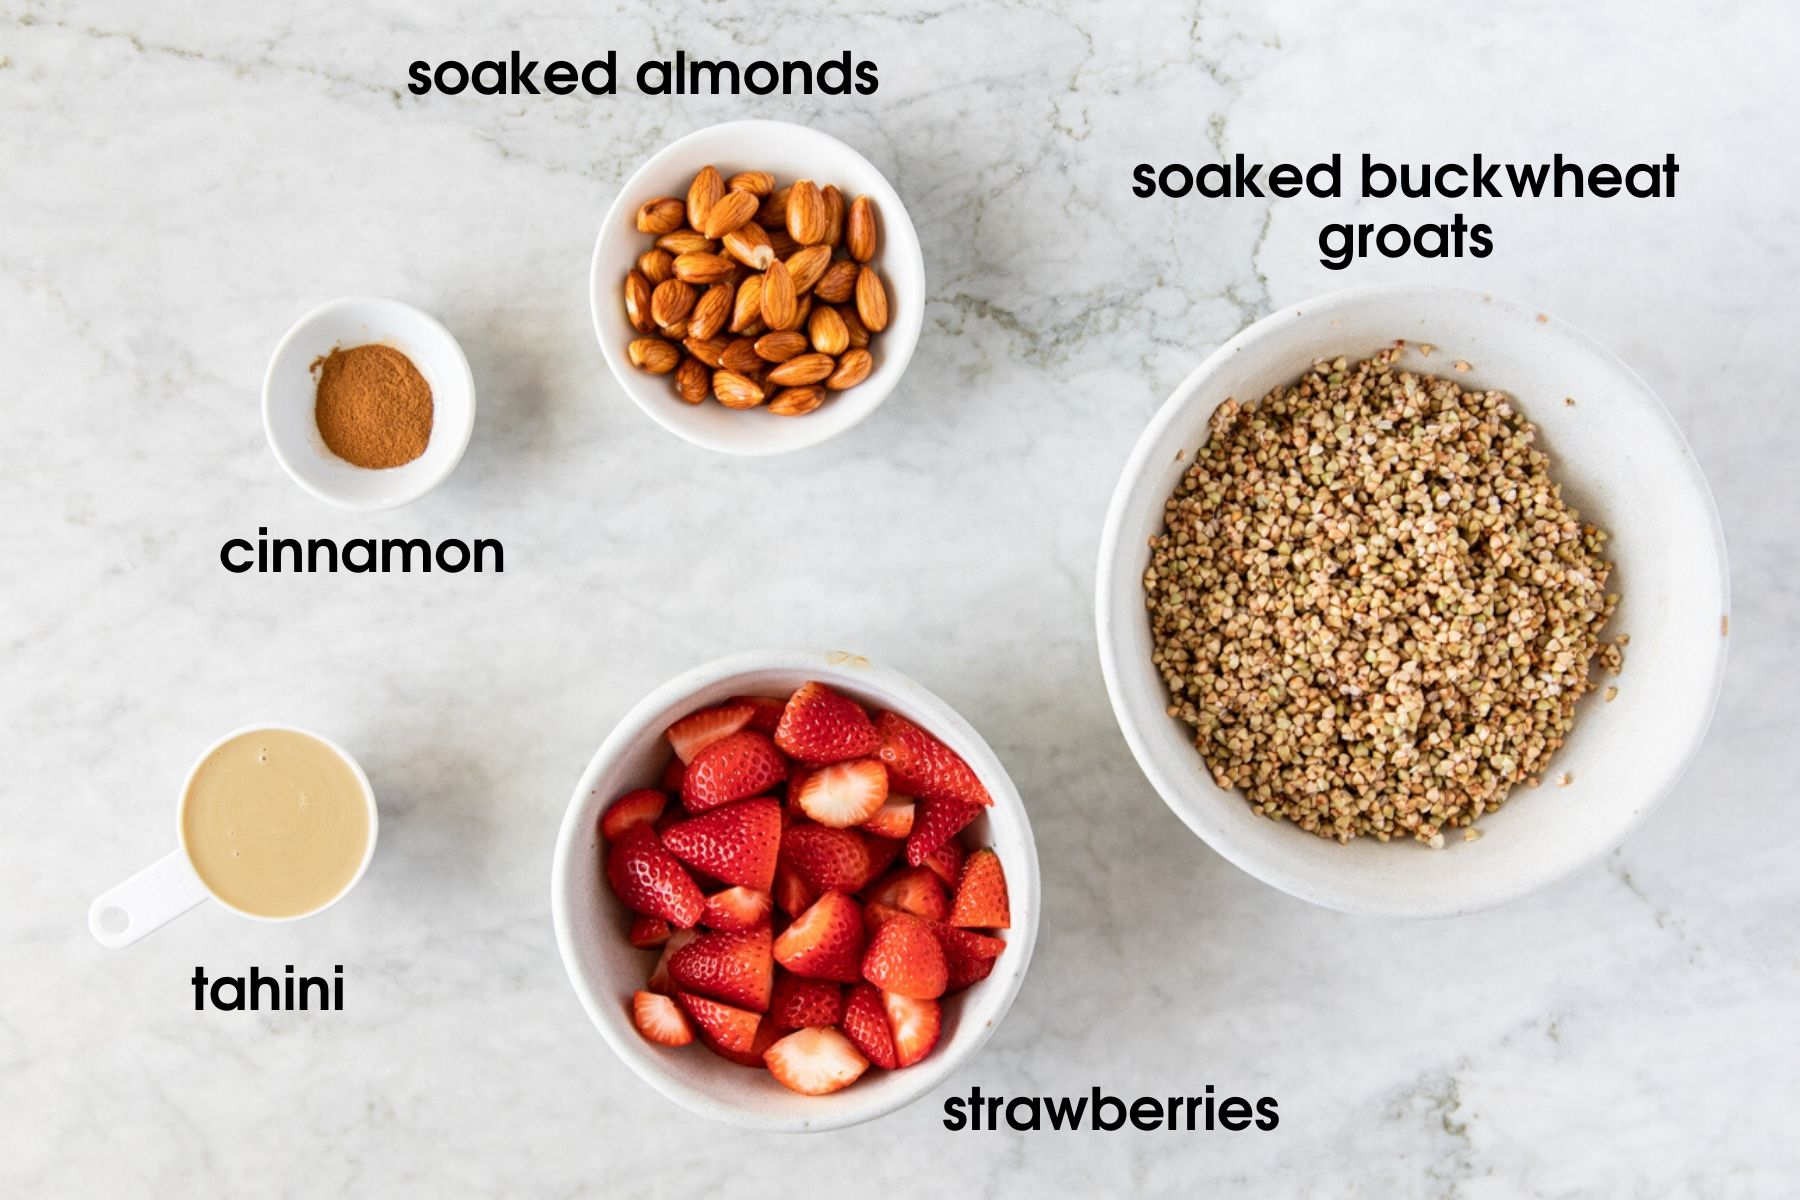 bowls with ingredients to make vegan raw buckwheat groats porridge including cinnamon, soaked almonds, soaked buckwheat groats, strawberries and tahini